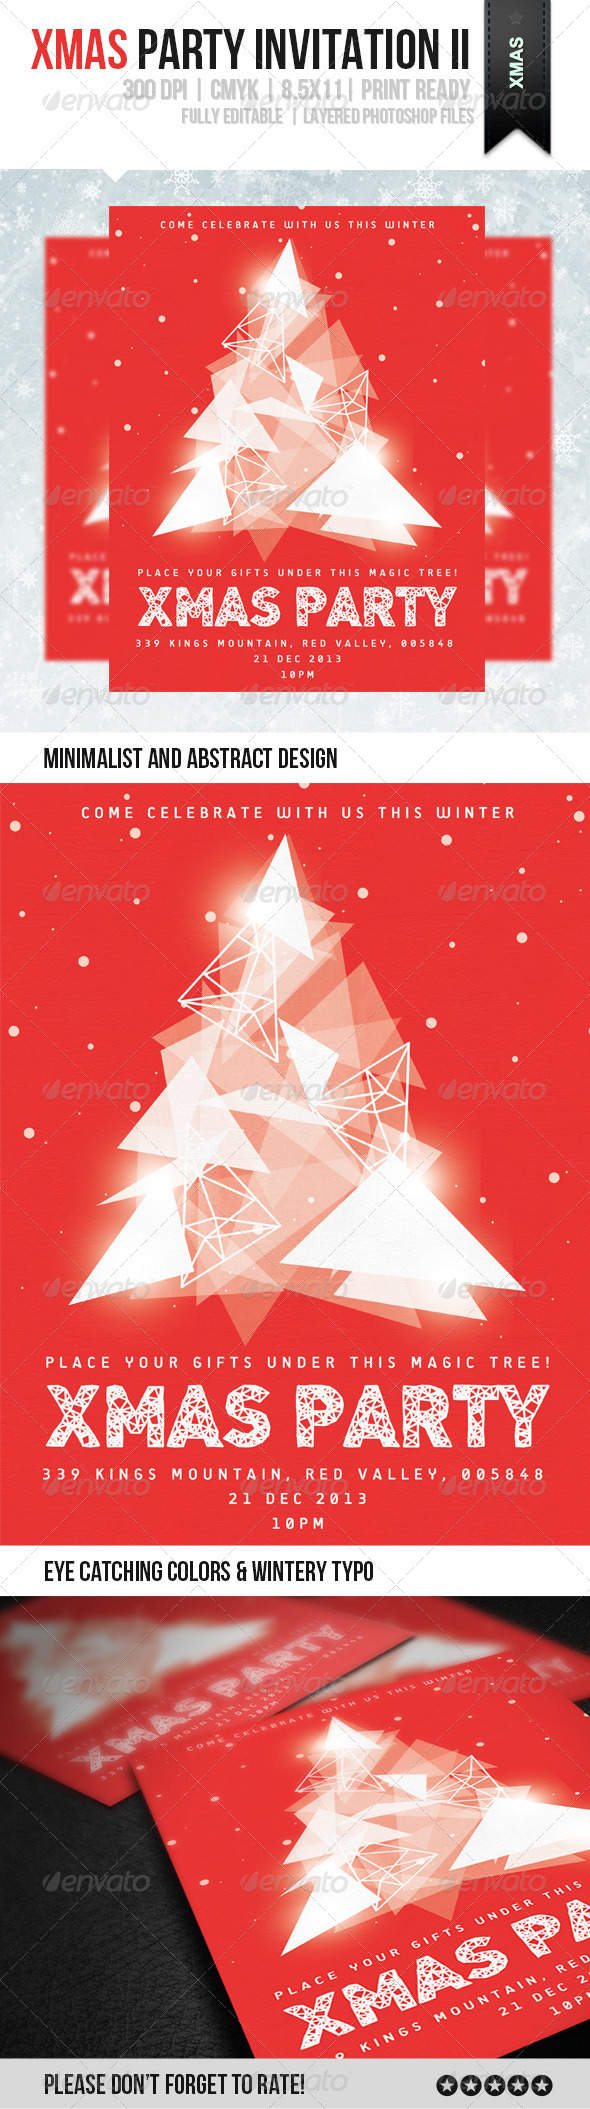 GraphicRiver xMas Party Invitation II 6050901